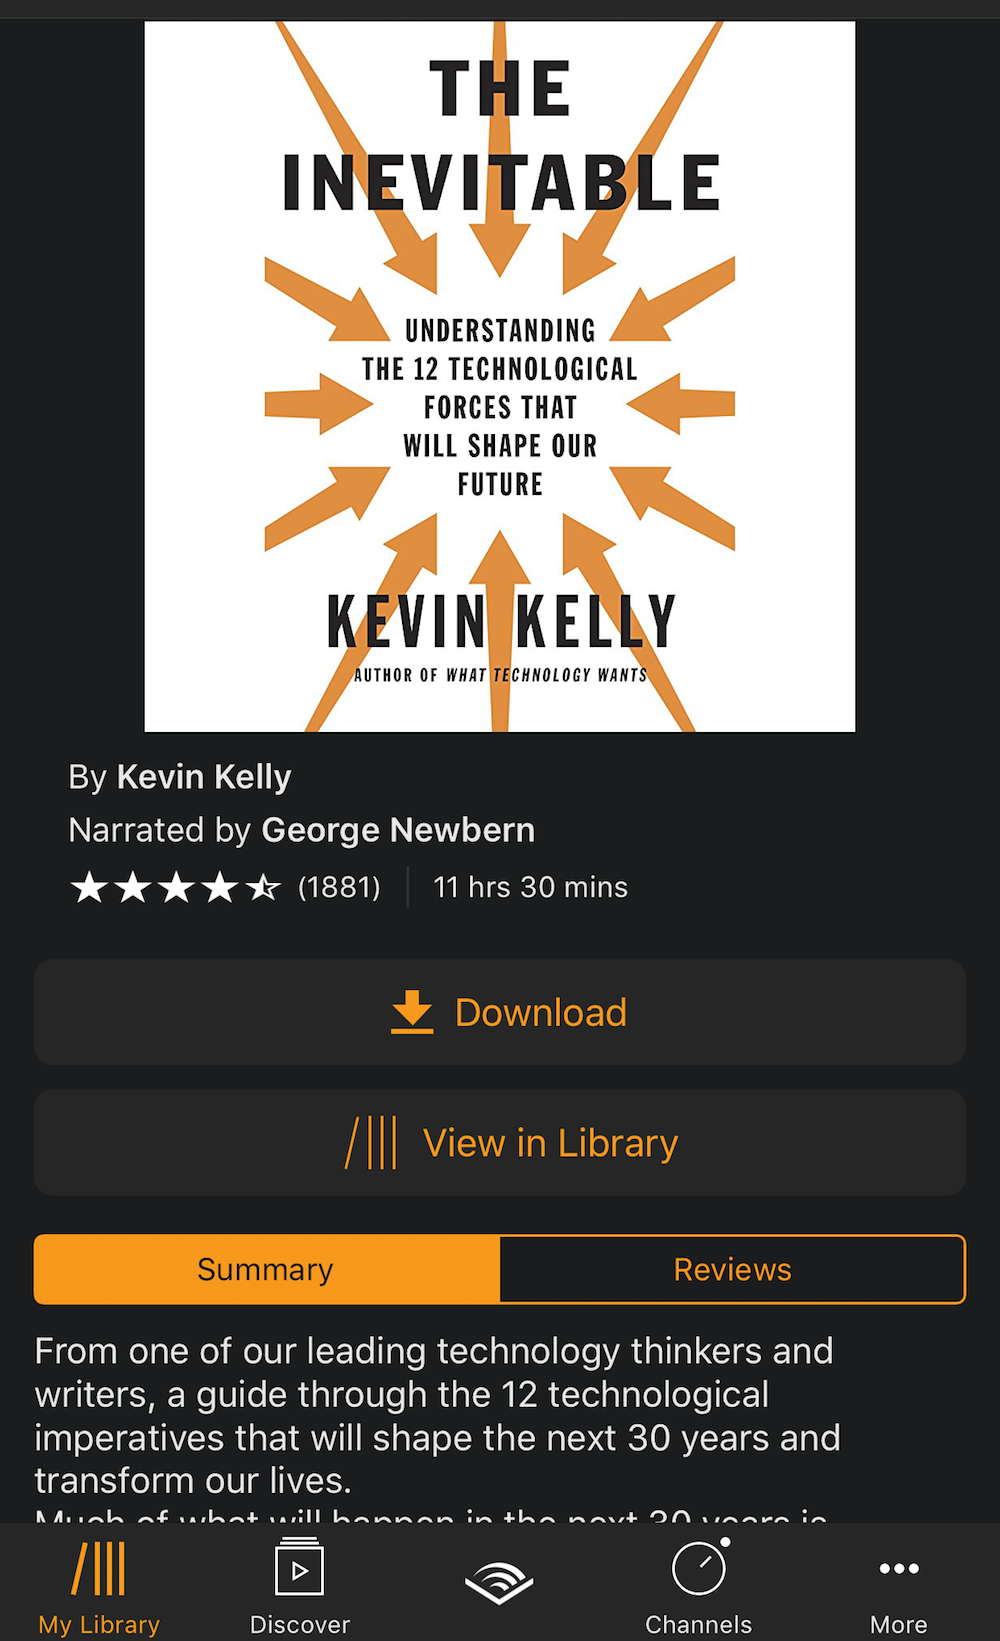 the-inevitable-kevin-kelly-audible-screenshot.jpg